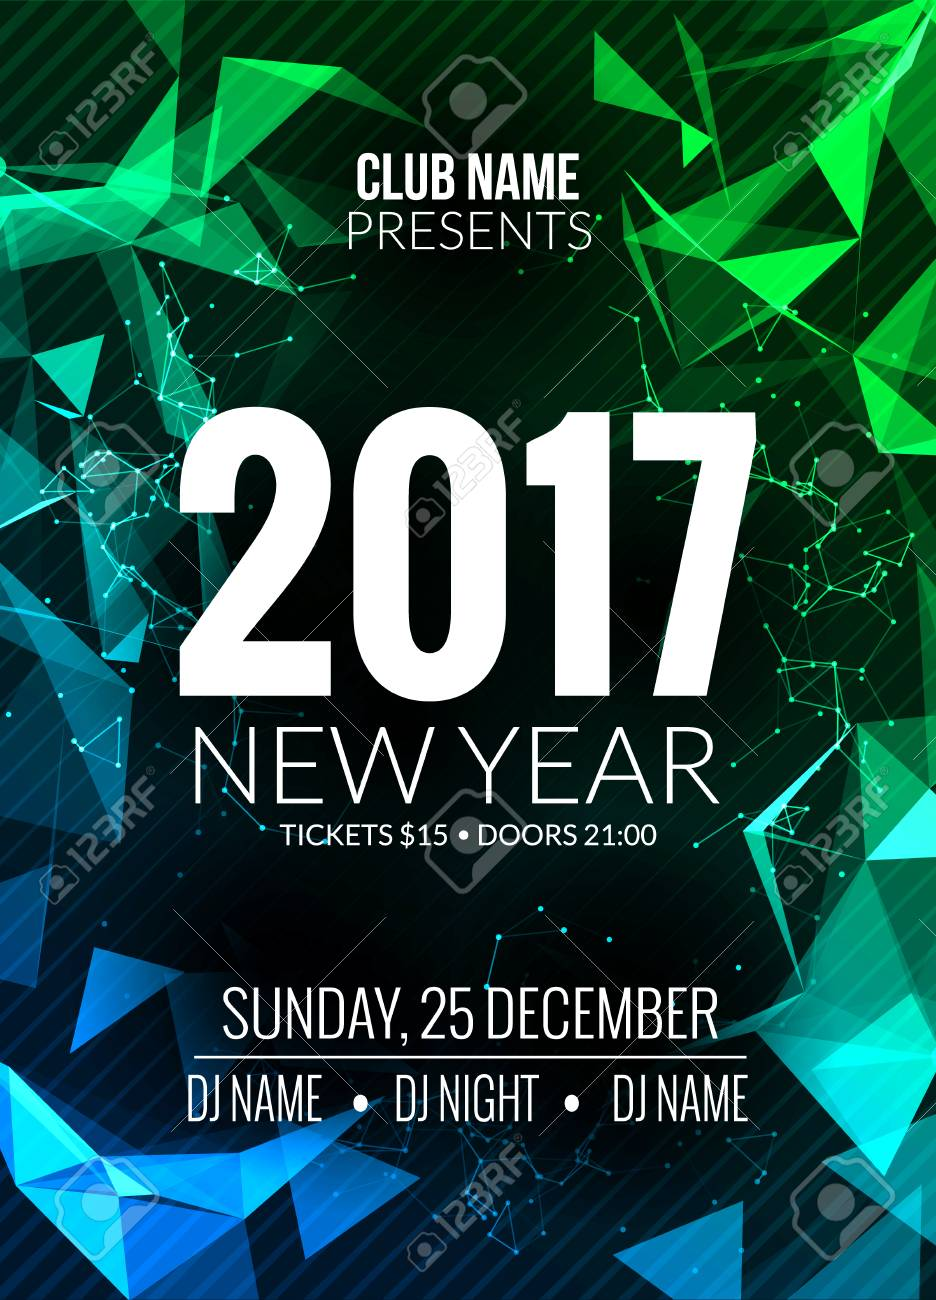 new year party design banner event celebration template new year festive poster invitation 2017